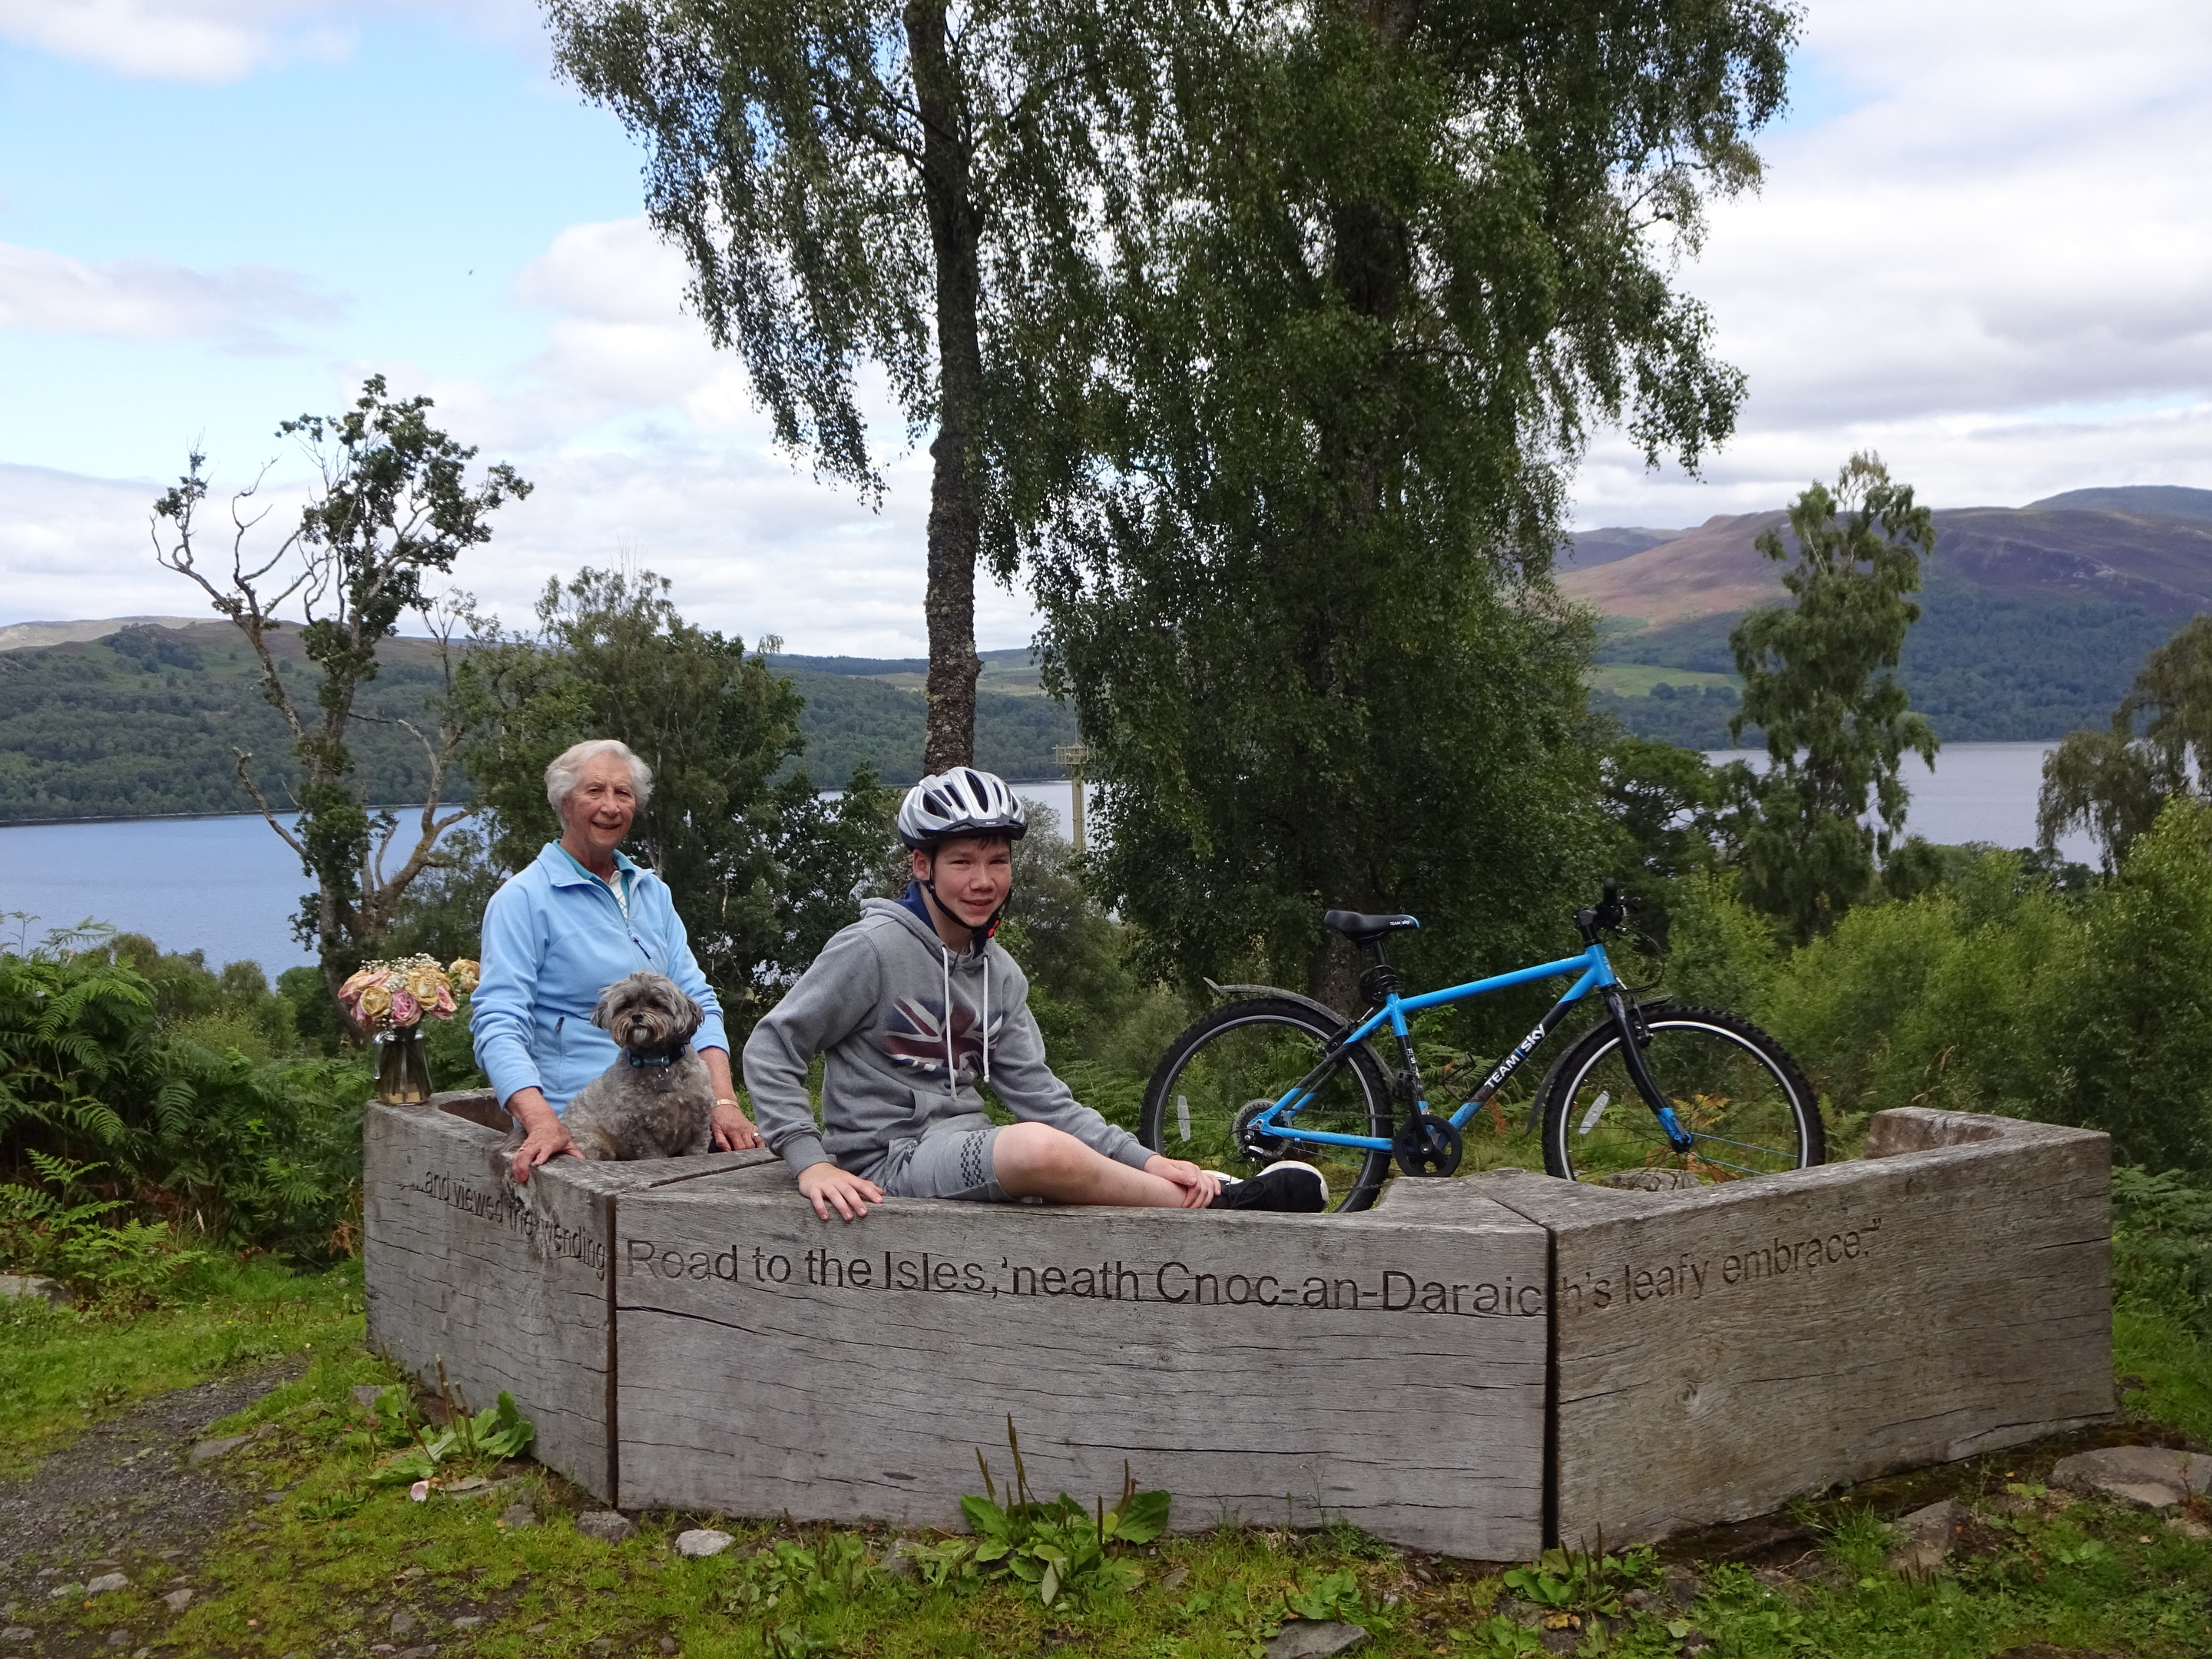 Harry on a trip to Kinloch Rannoch with his bike and family.